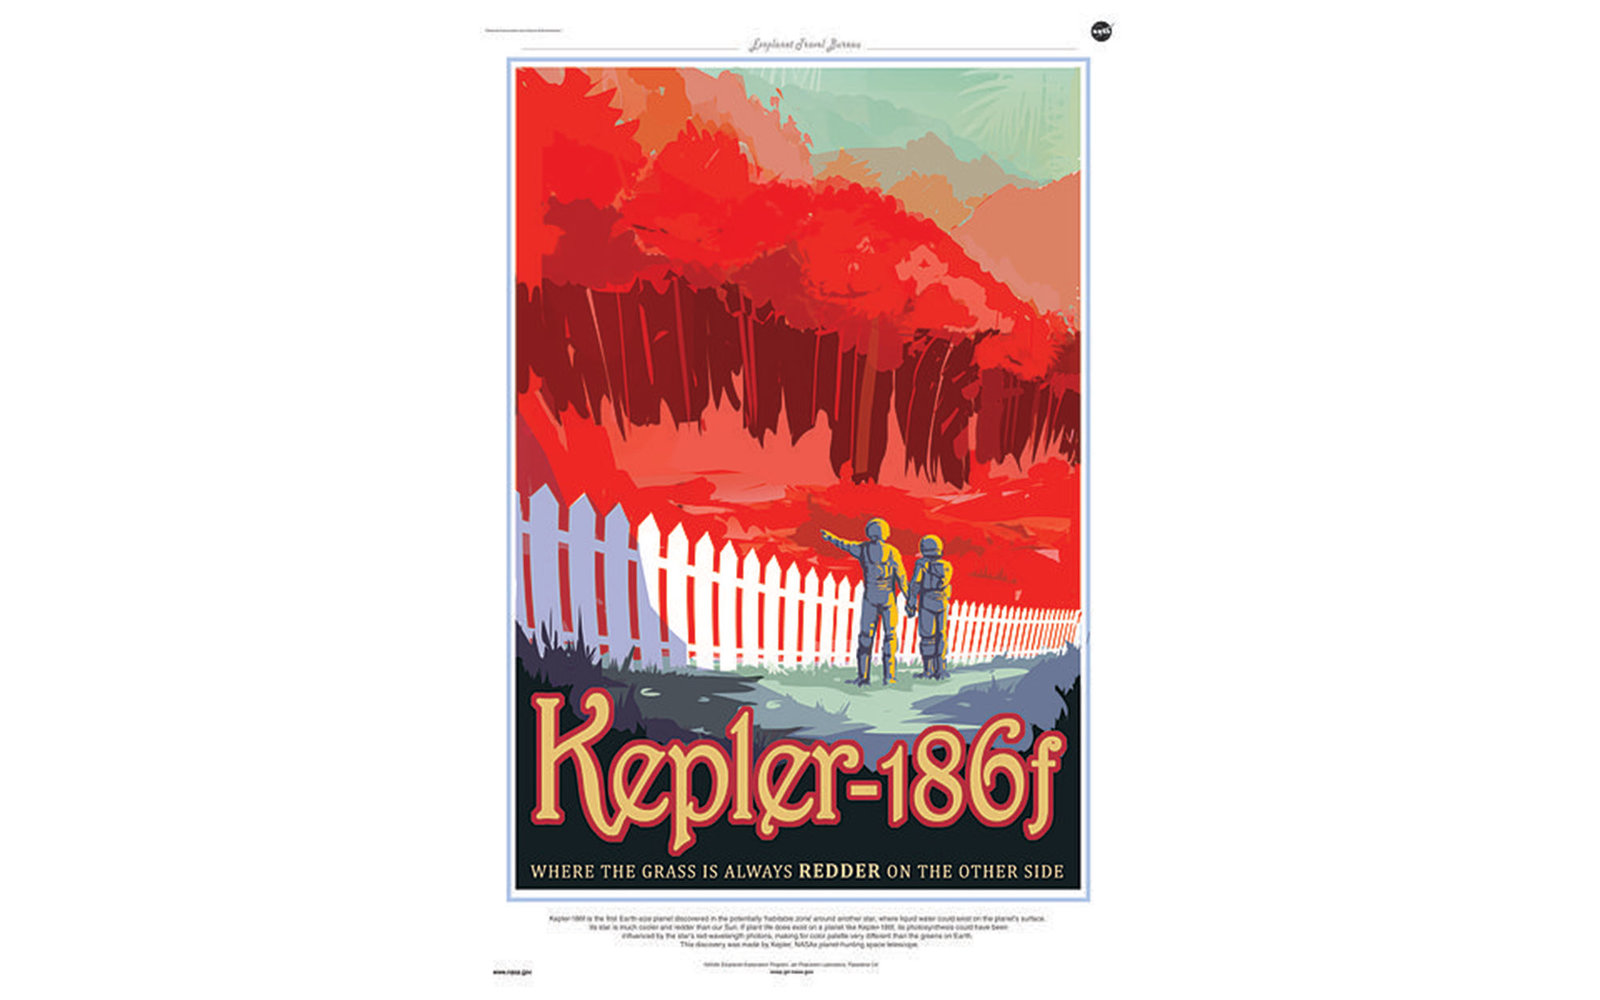 NASAs New Space Travel Posters Are The Vision Of The Future - Retro style posters from nasa imagine how the future of space travel will look